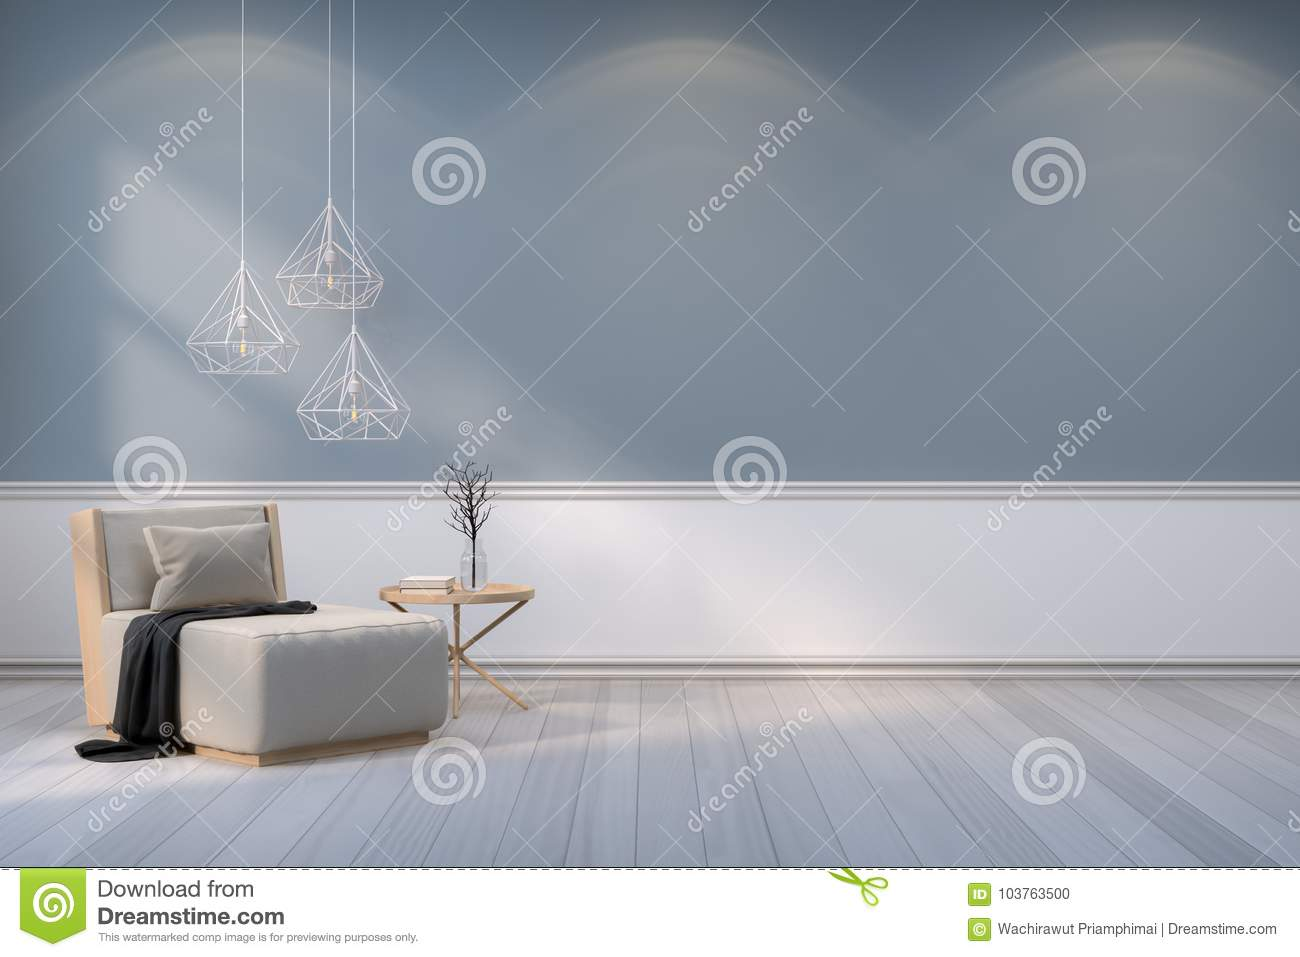 Minimalist room interior design,wood armchair with white lamp on gray wall and wood floor /3d render